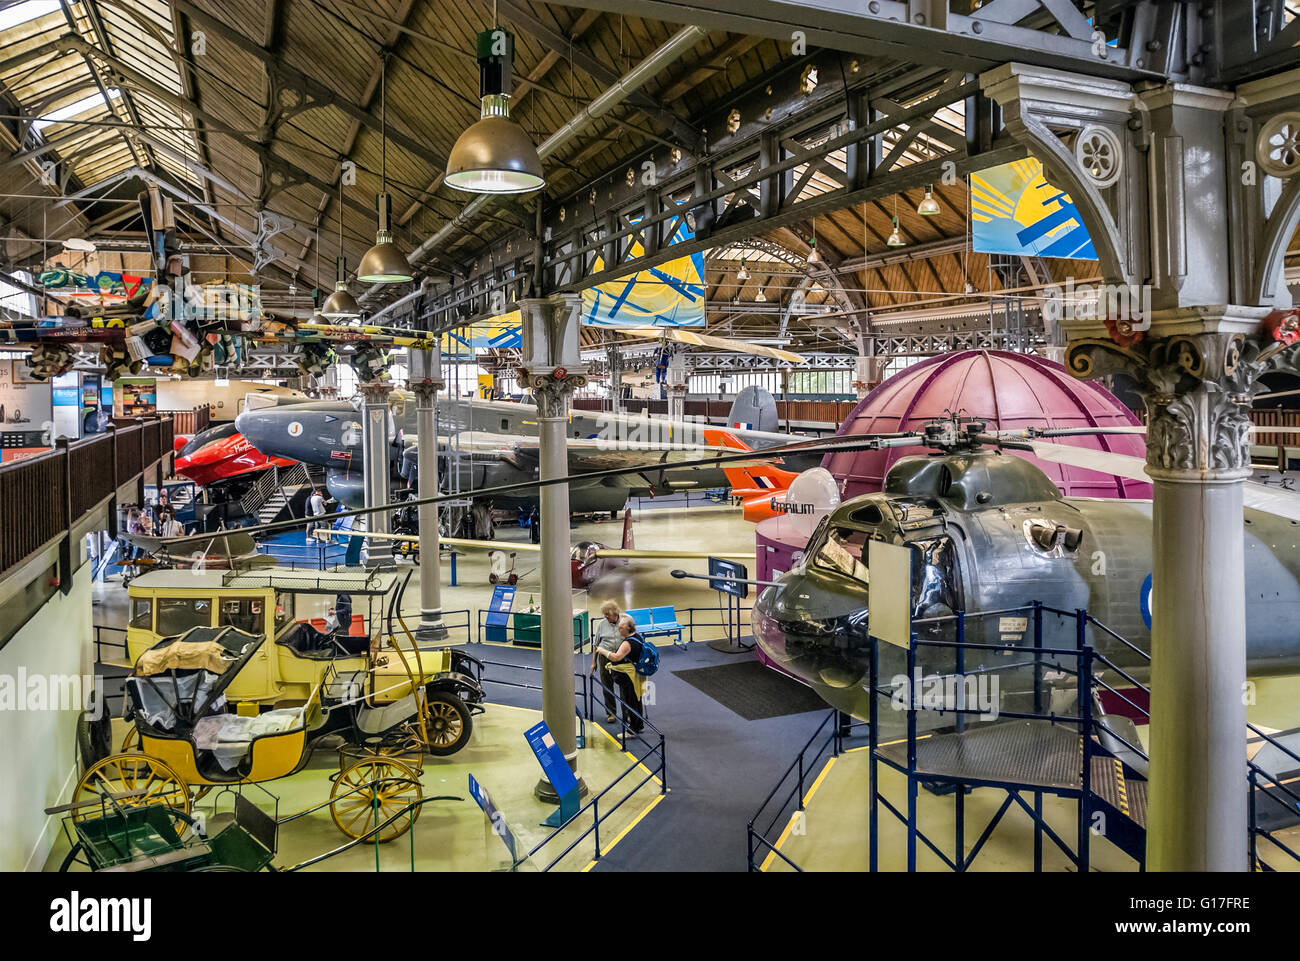 Airplanes and Vehicles on display the Air & Space Hall at the Museum of Science and Industry in Manchester (MOSI), - Stock Image